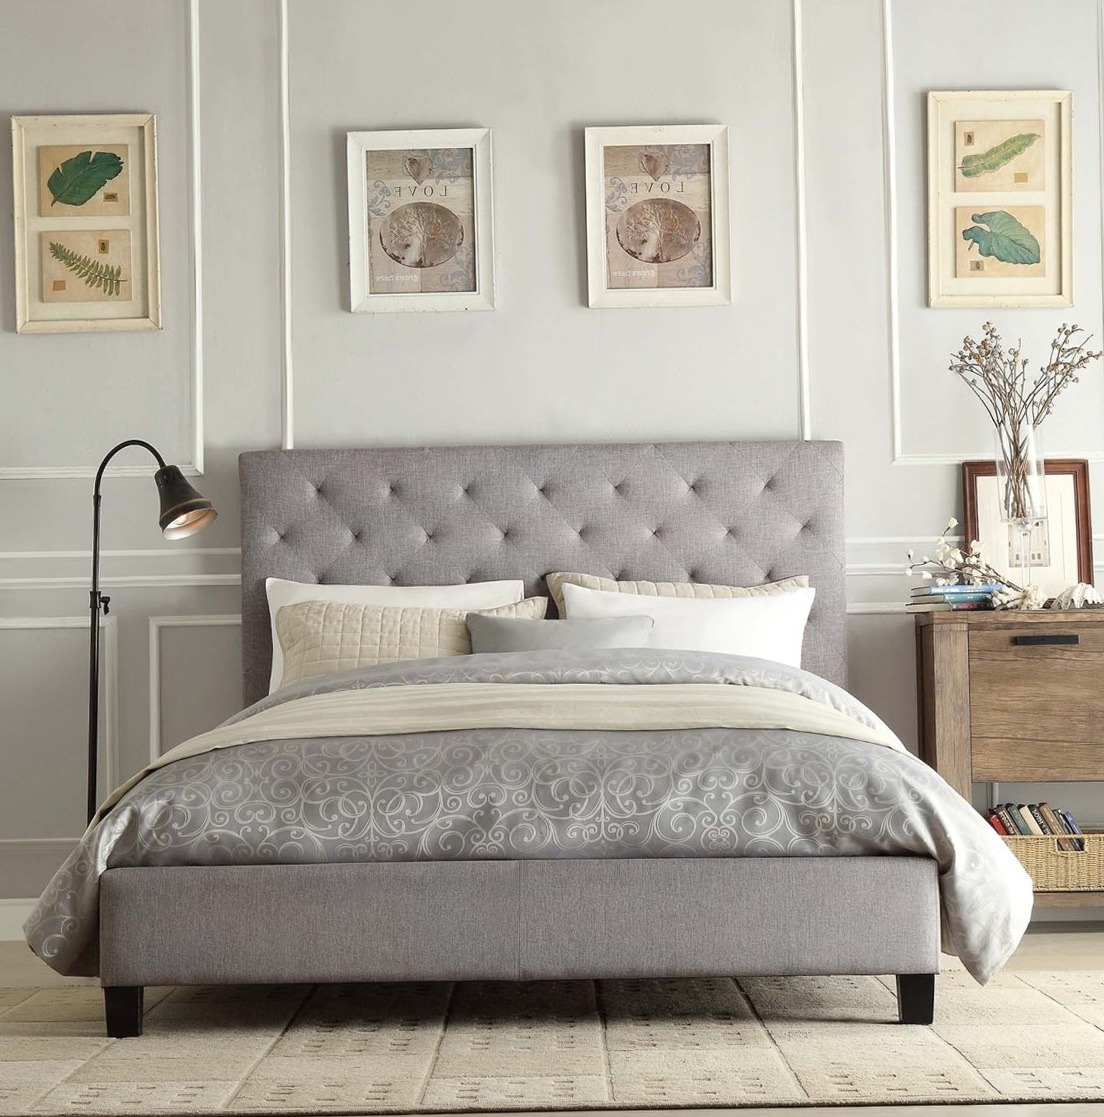 Queen Bed Headboard Designs